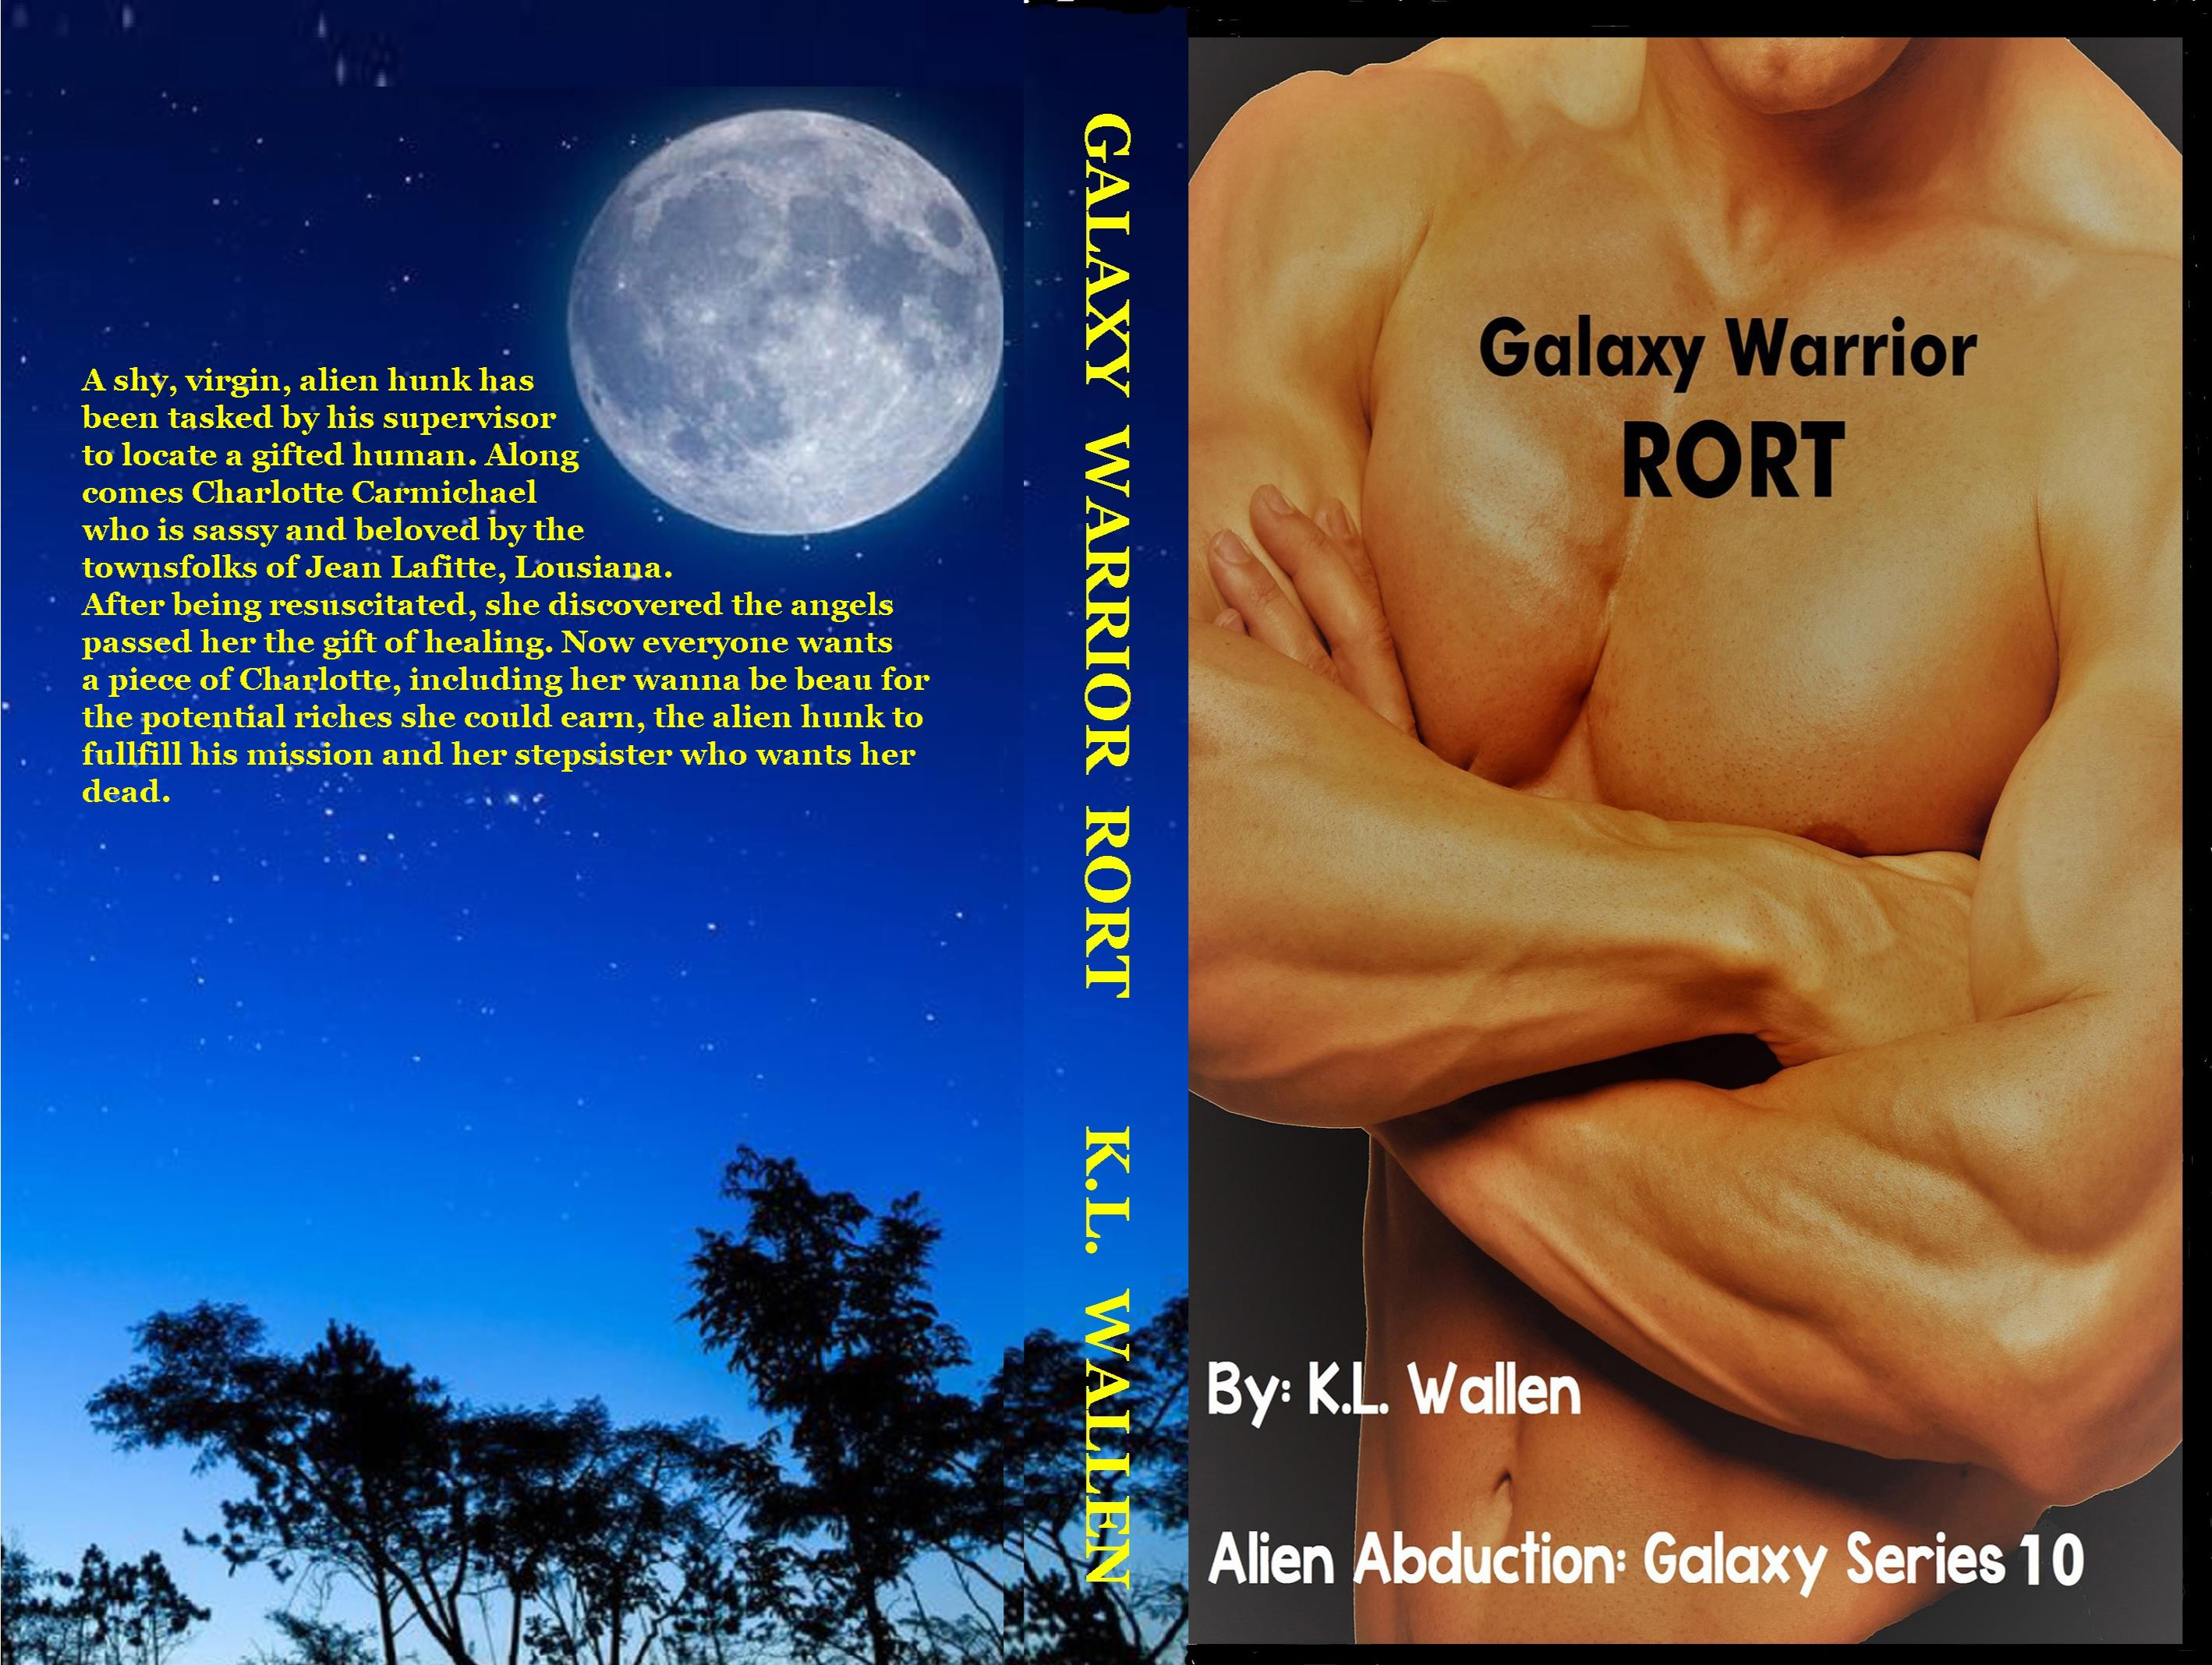 Galaxy Warrior Rort cover image